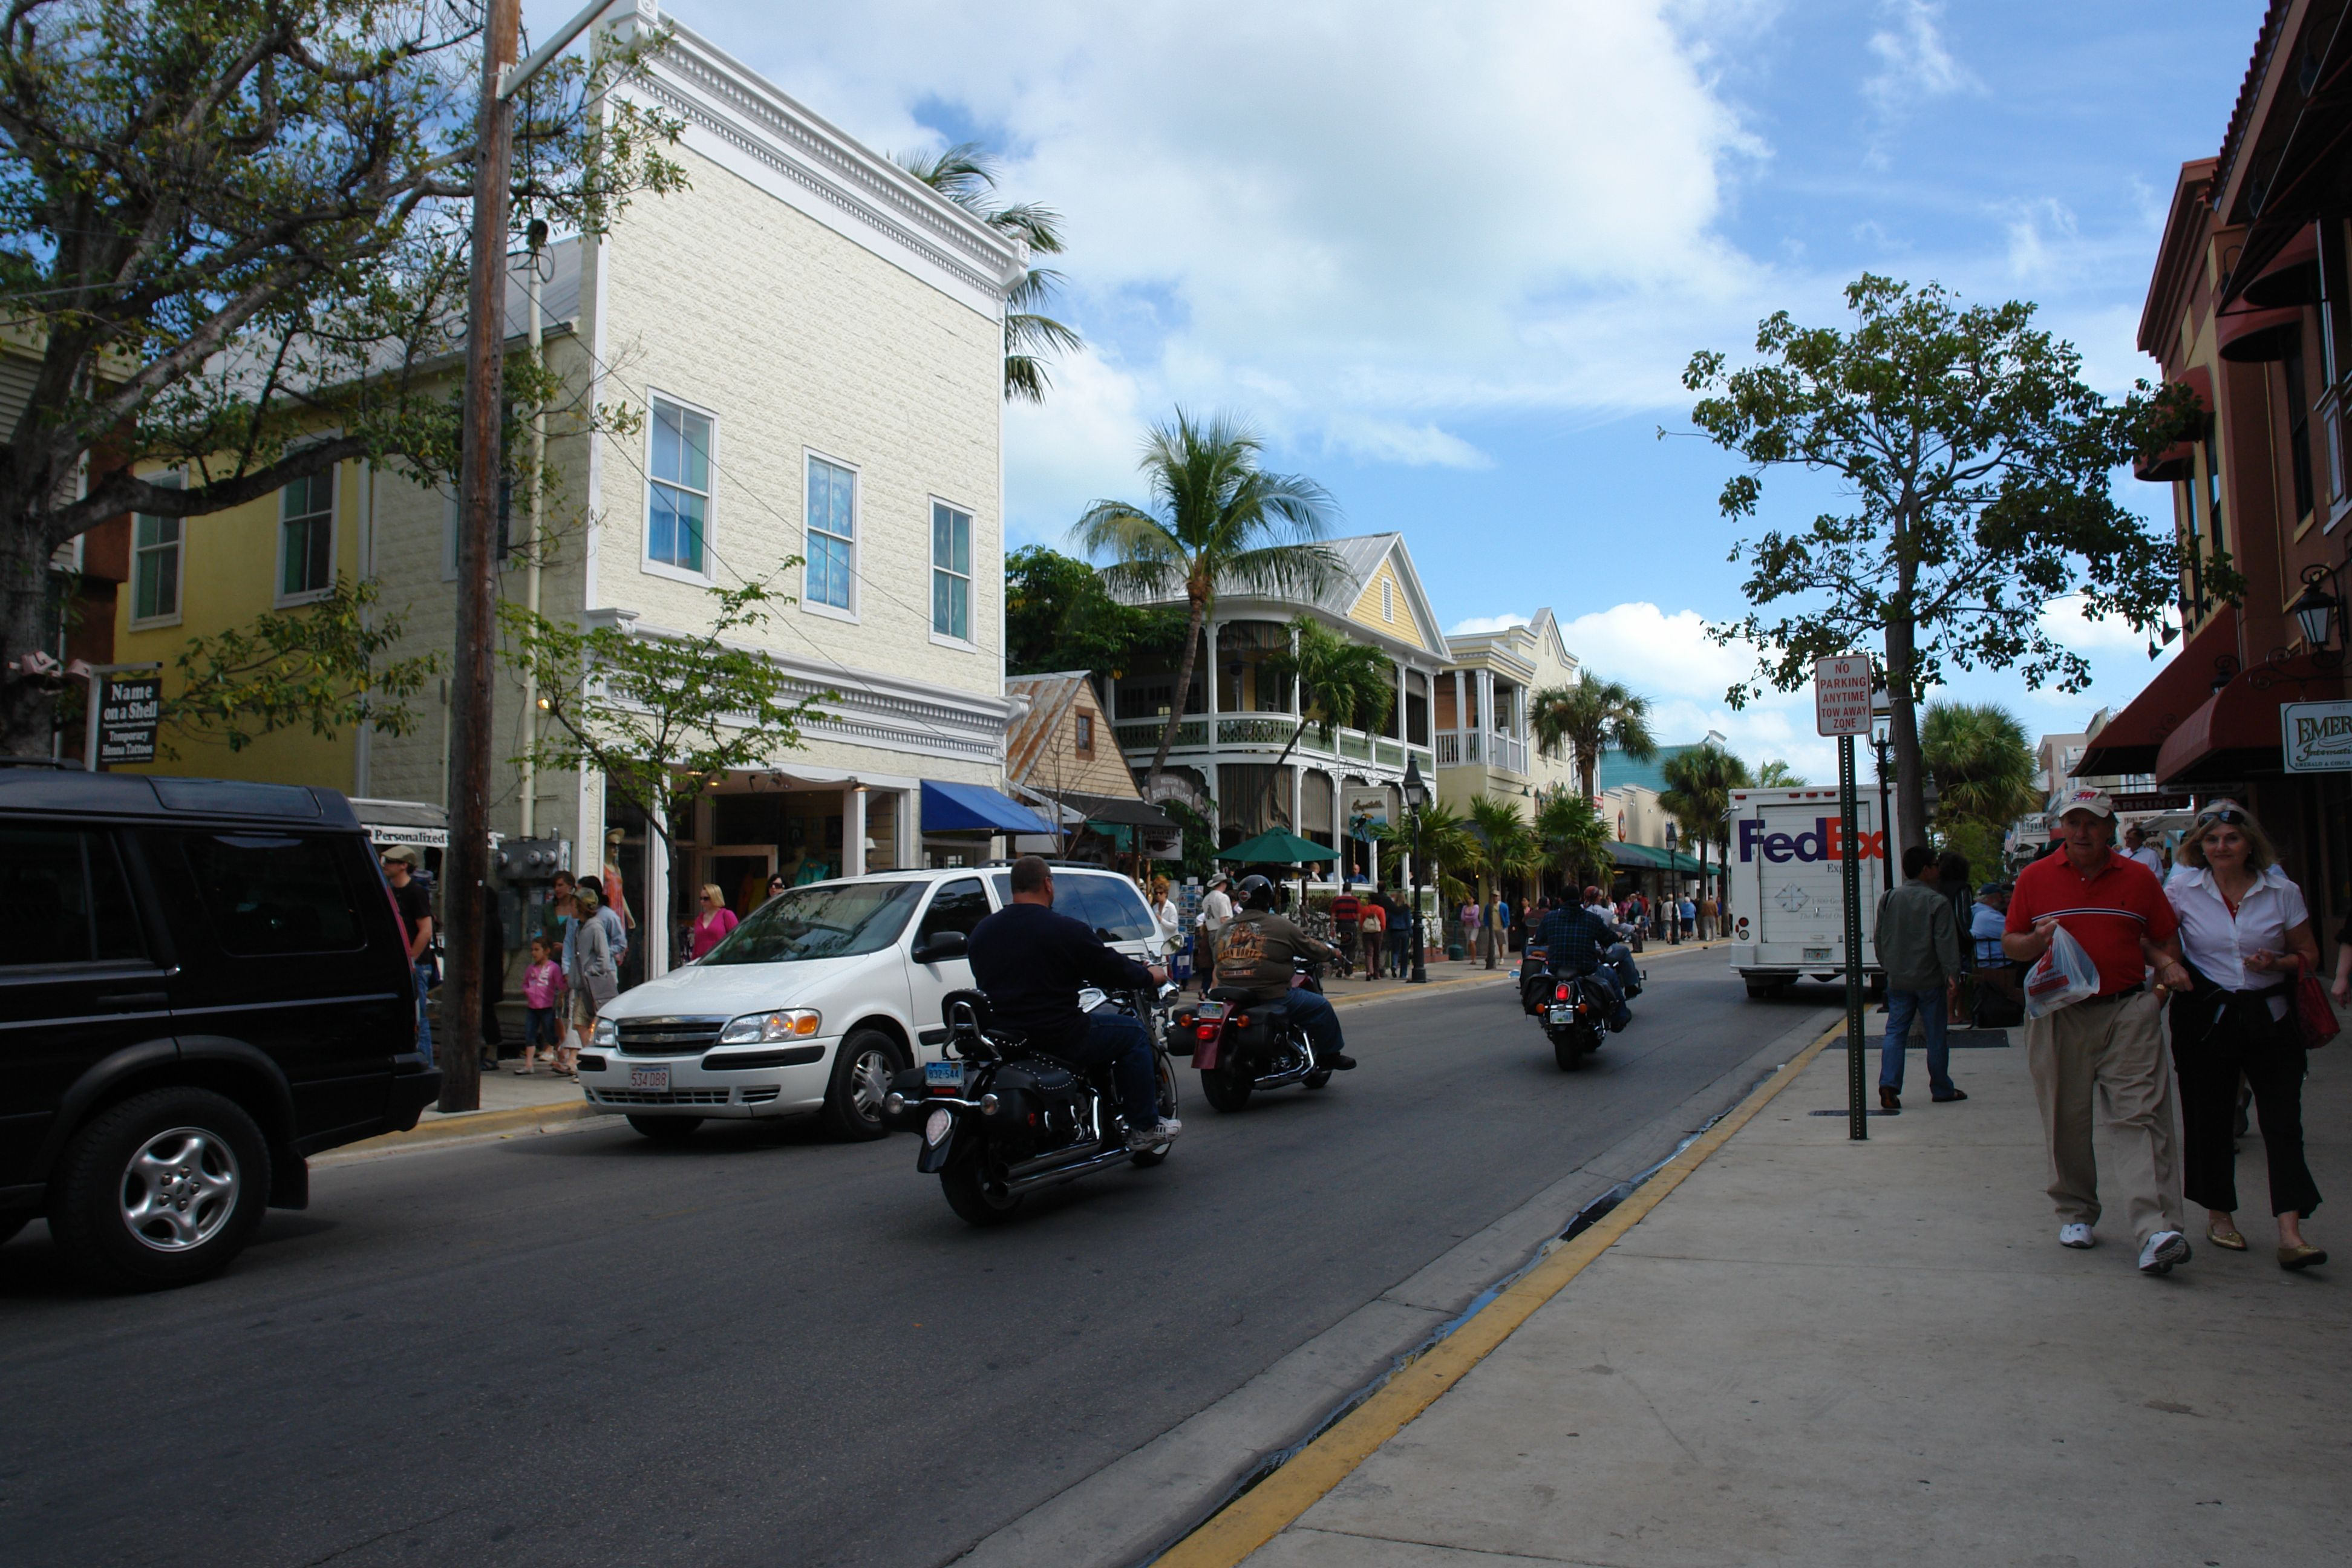 Key West! God I miss this place! Note to self: When money is saved, I'm headed back!